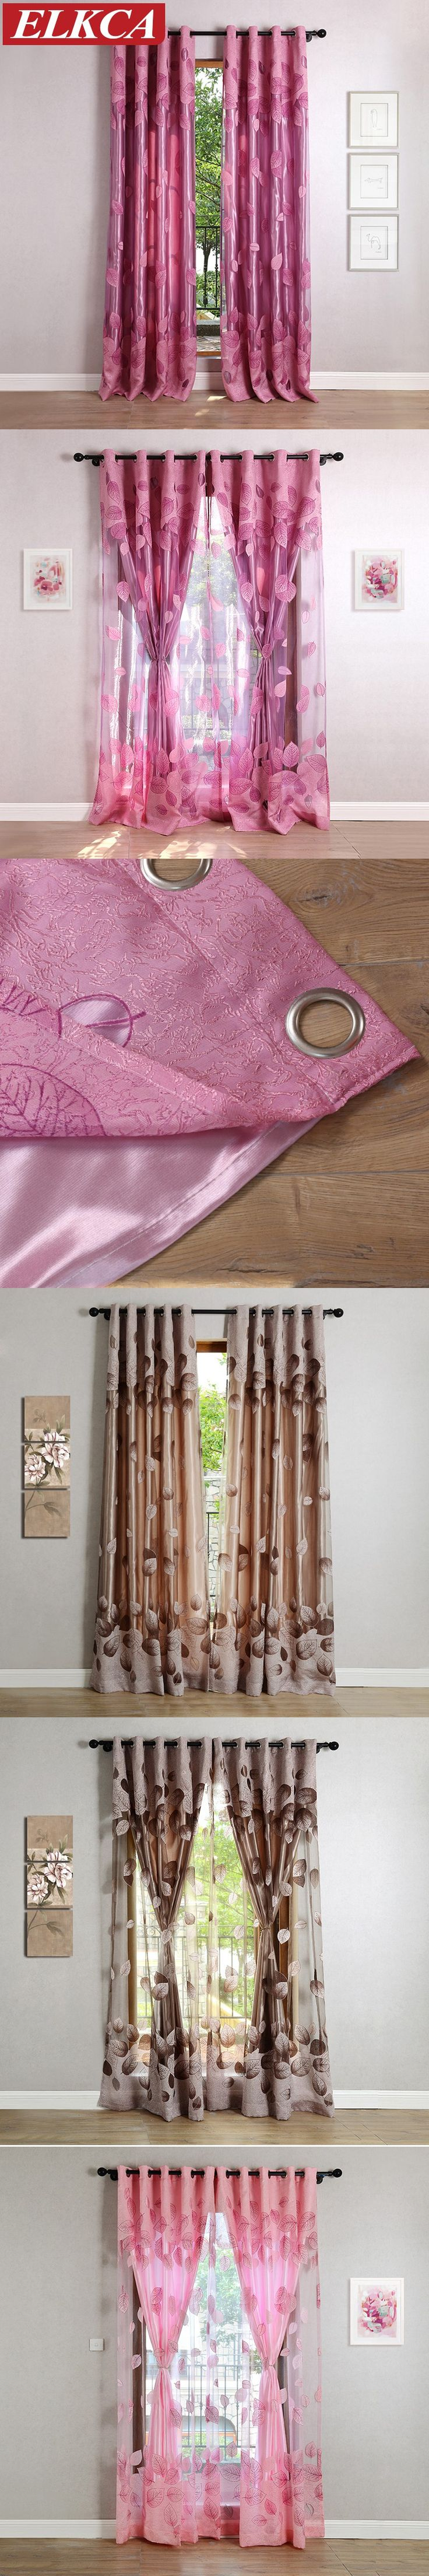 78 best ideas about tulle curtains on pinterest | tulle backdrop